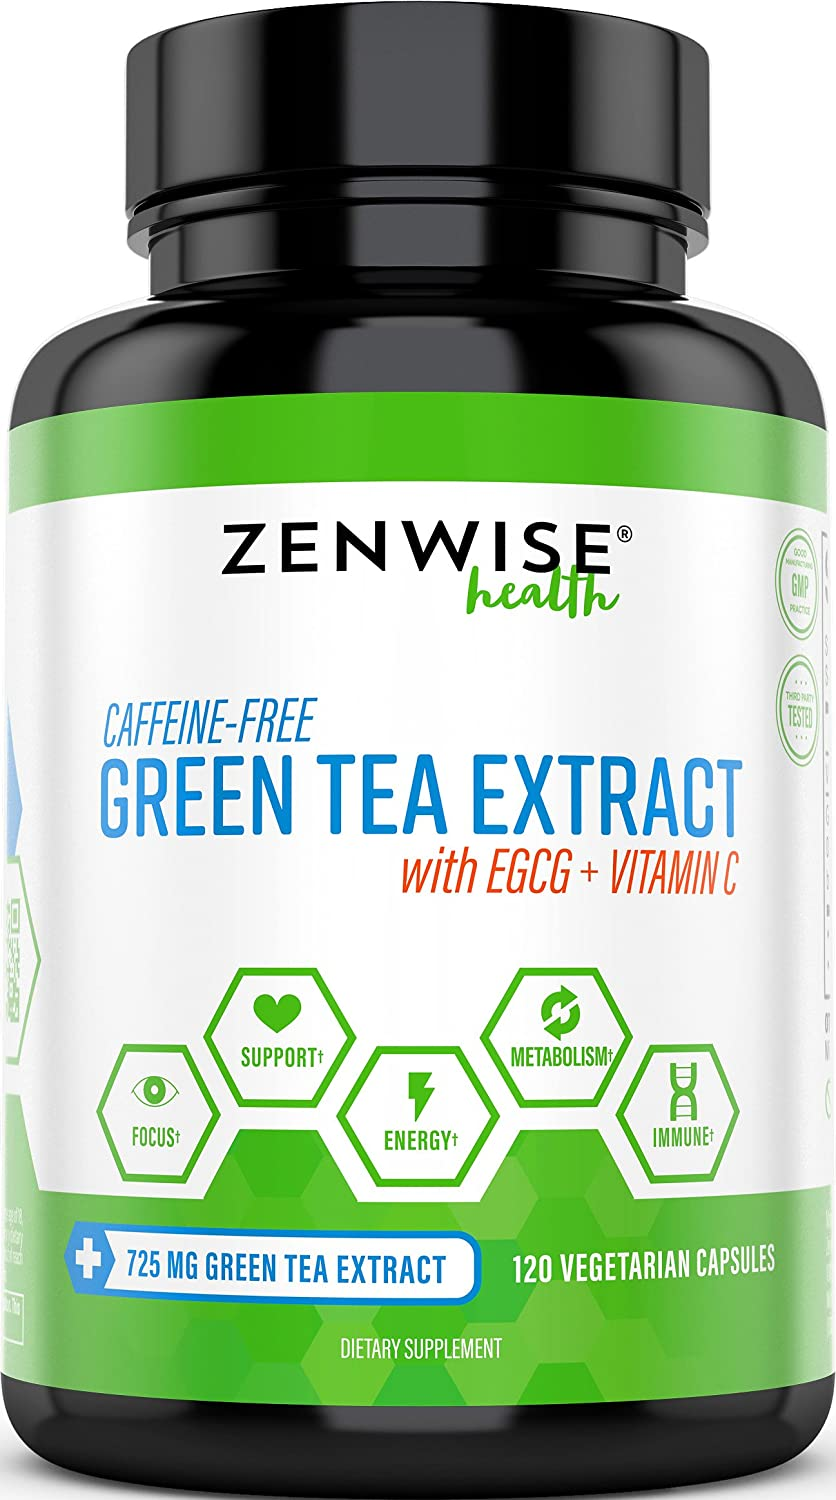 Product thumbnail for Zenwise caffeine-free green tea extract